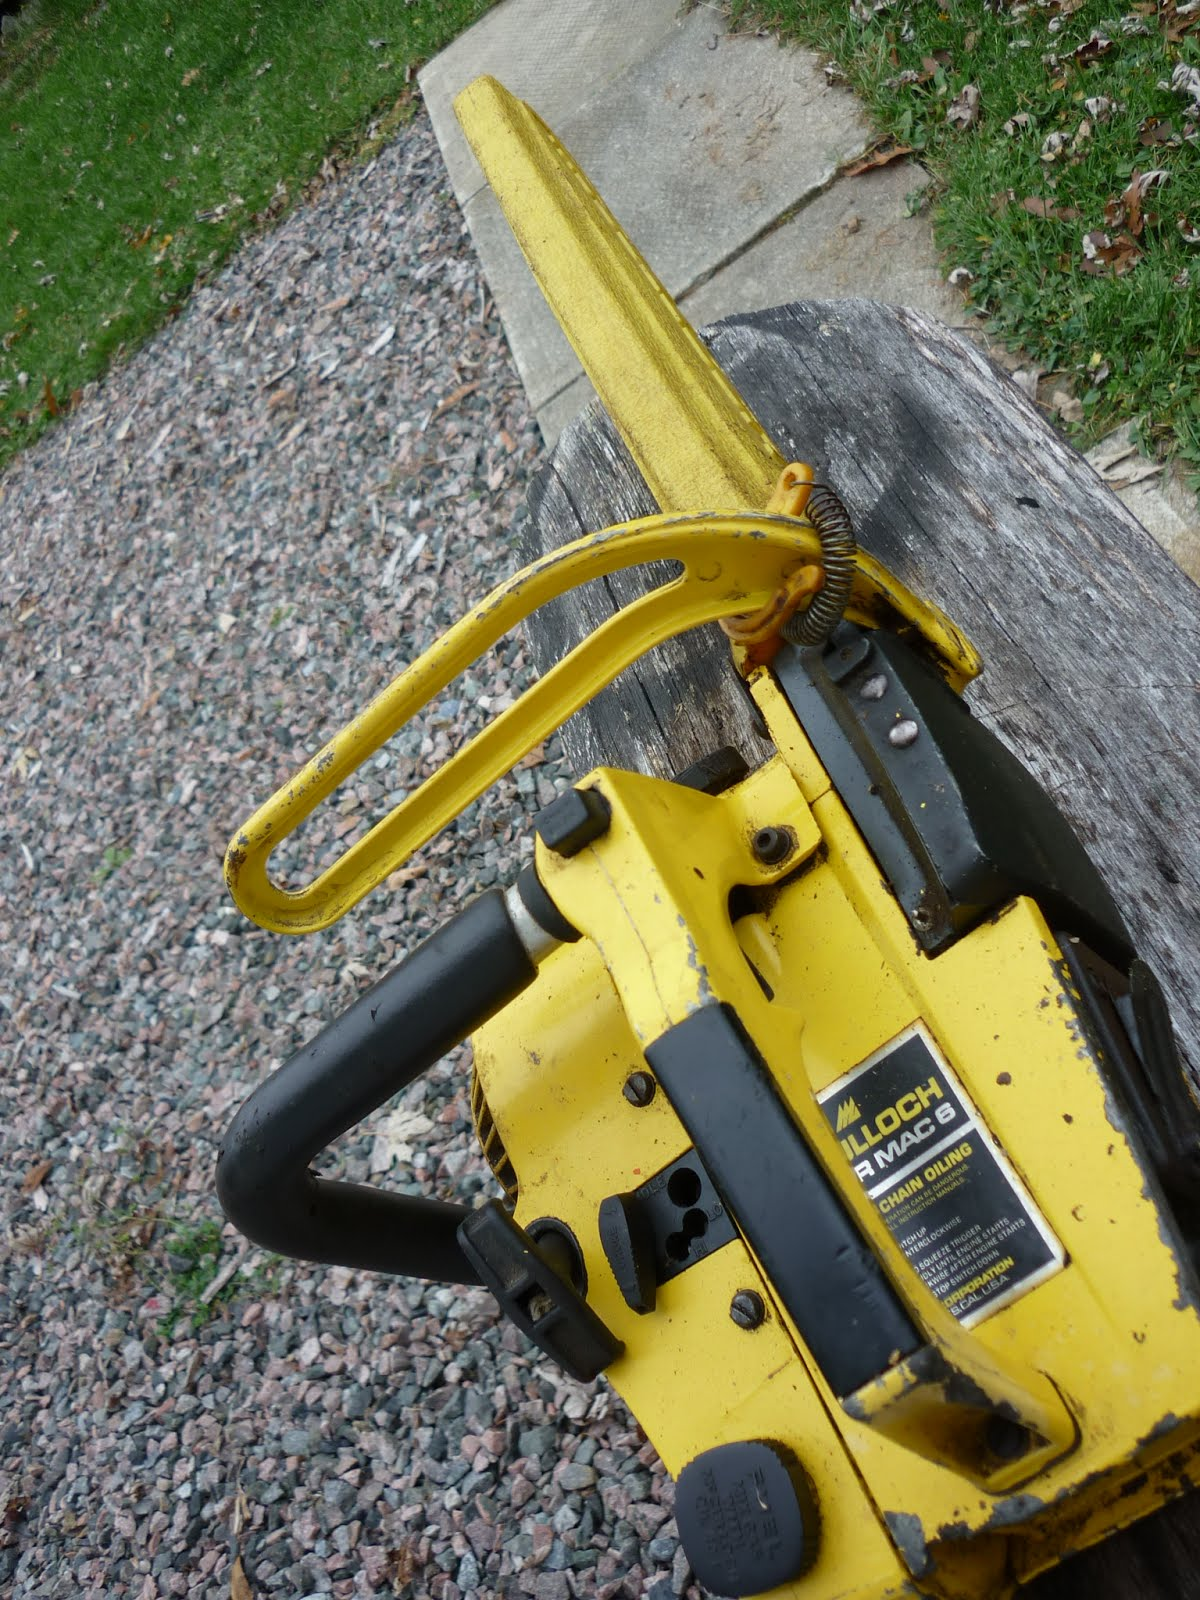 VINTAGE CHAINSAW COLLECTION: MCCULLOCH GROUP OF SAWS